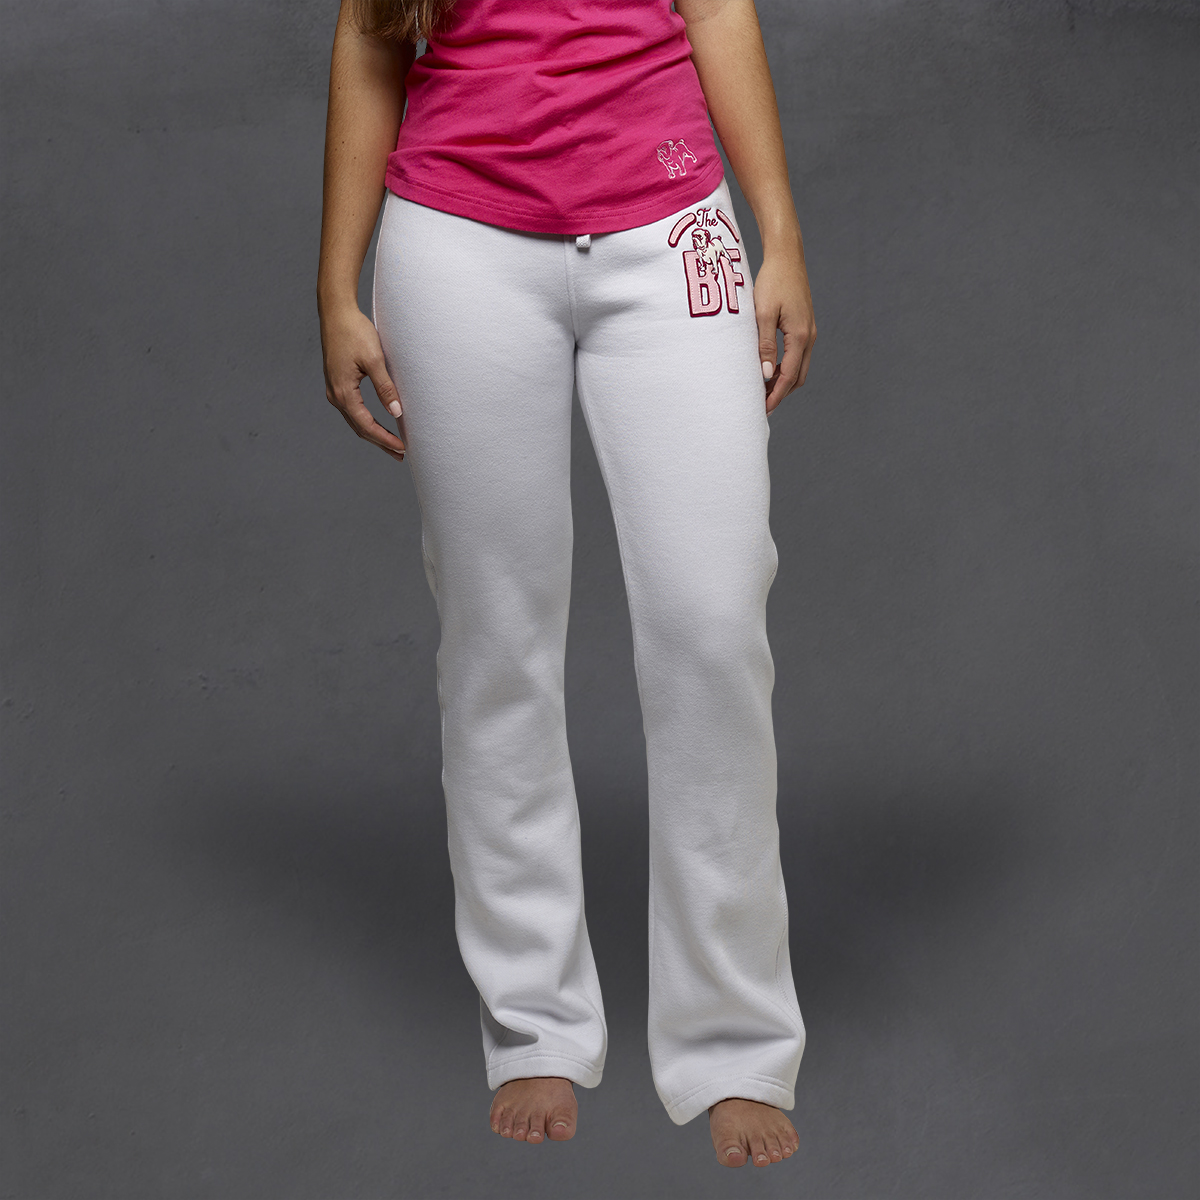 Hollister girls' sweatpants just might be! Our sweatpants are made of the softest fleece and dreamiest cotton blends. And they're as fashionable as they are comfortable so they'll keep you warm and cozy while keeping your unique style game strong.